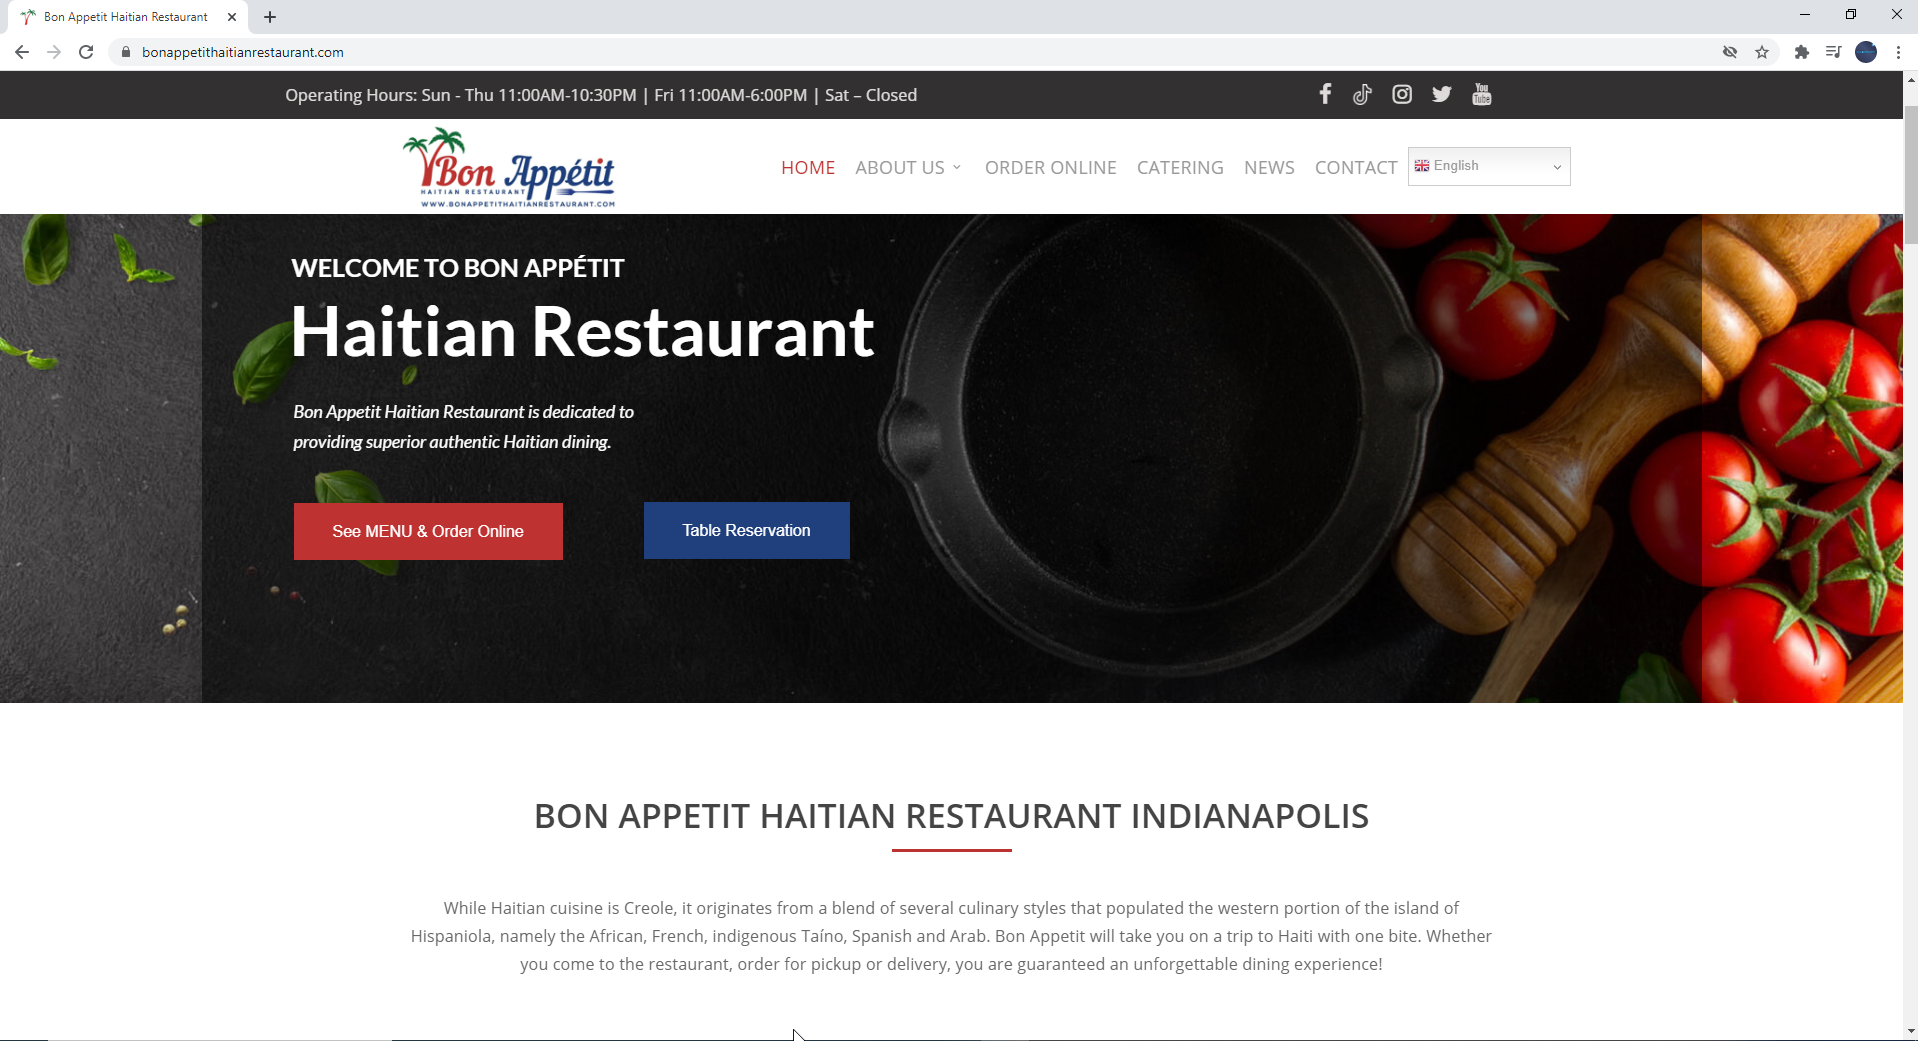 NAOSSOFT Launches New Website and Online Food Ordering System for Bon Appetit Haitian Restaurant in Indianapolis